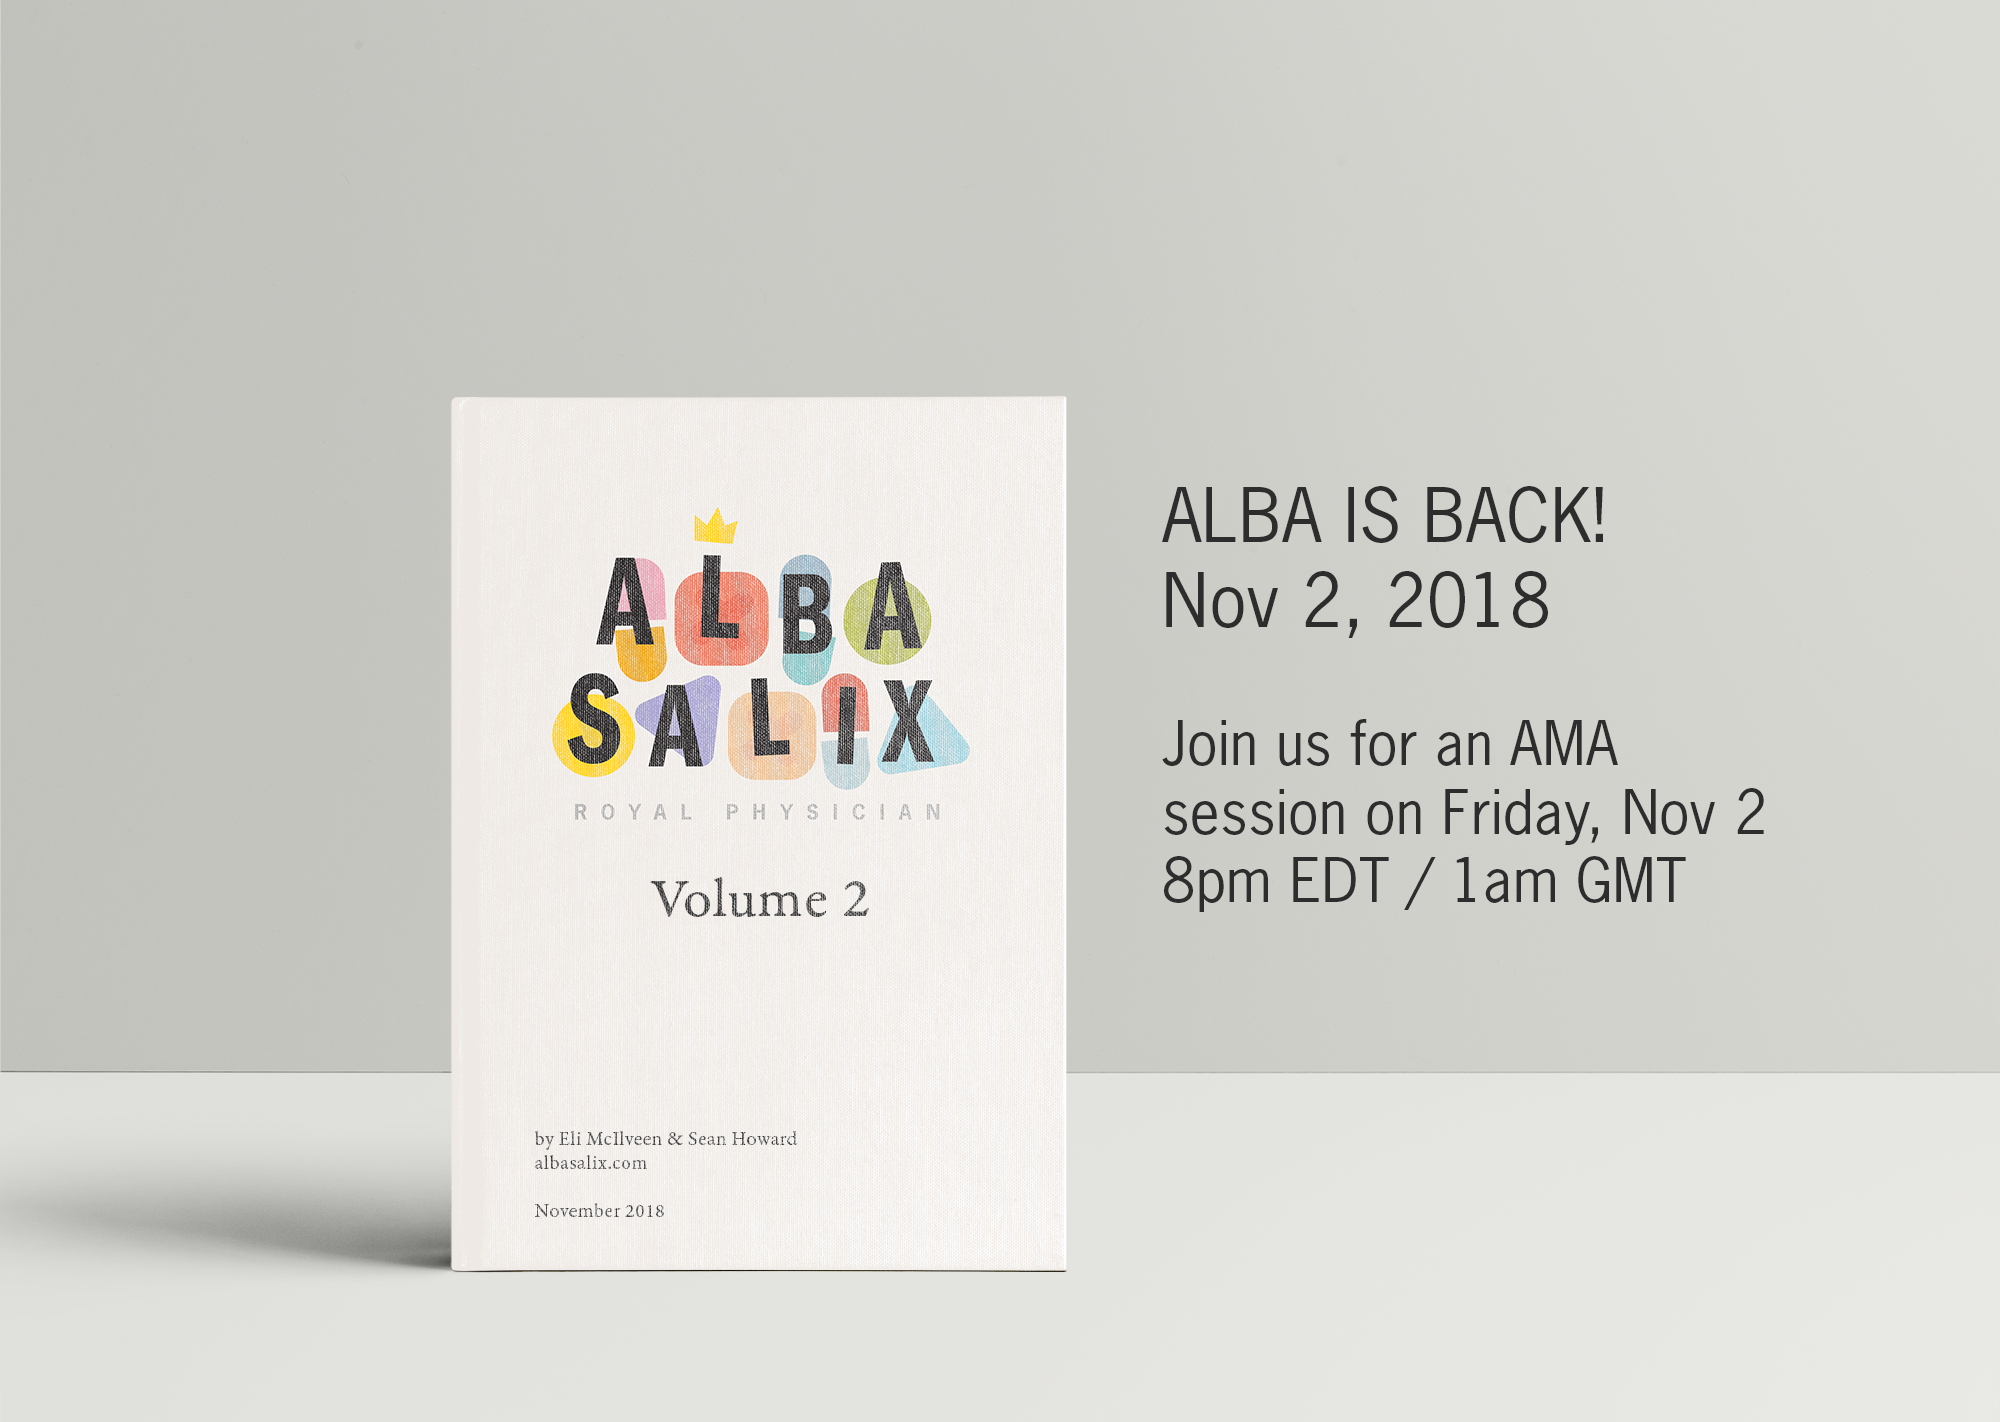 Alba is back! Joins us 8pm EDT for a live AMA